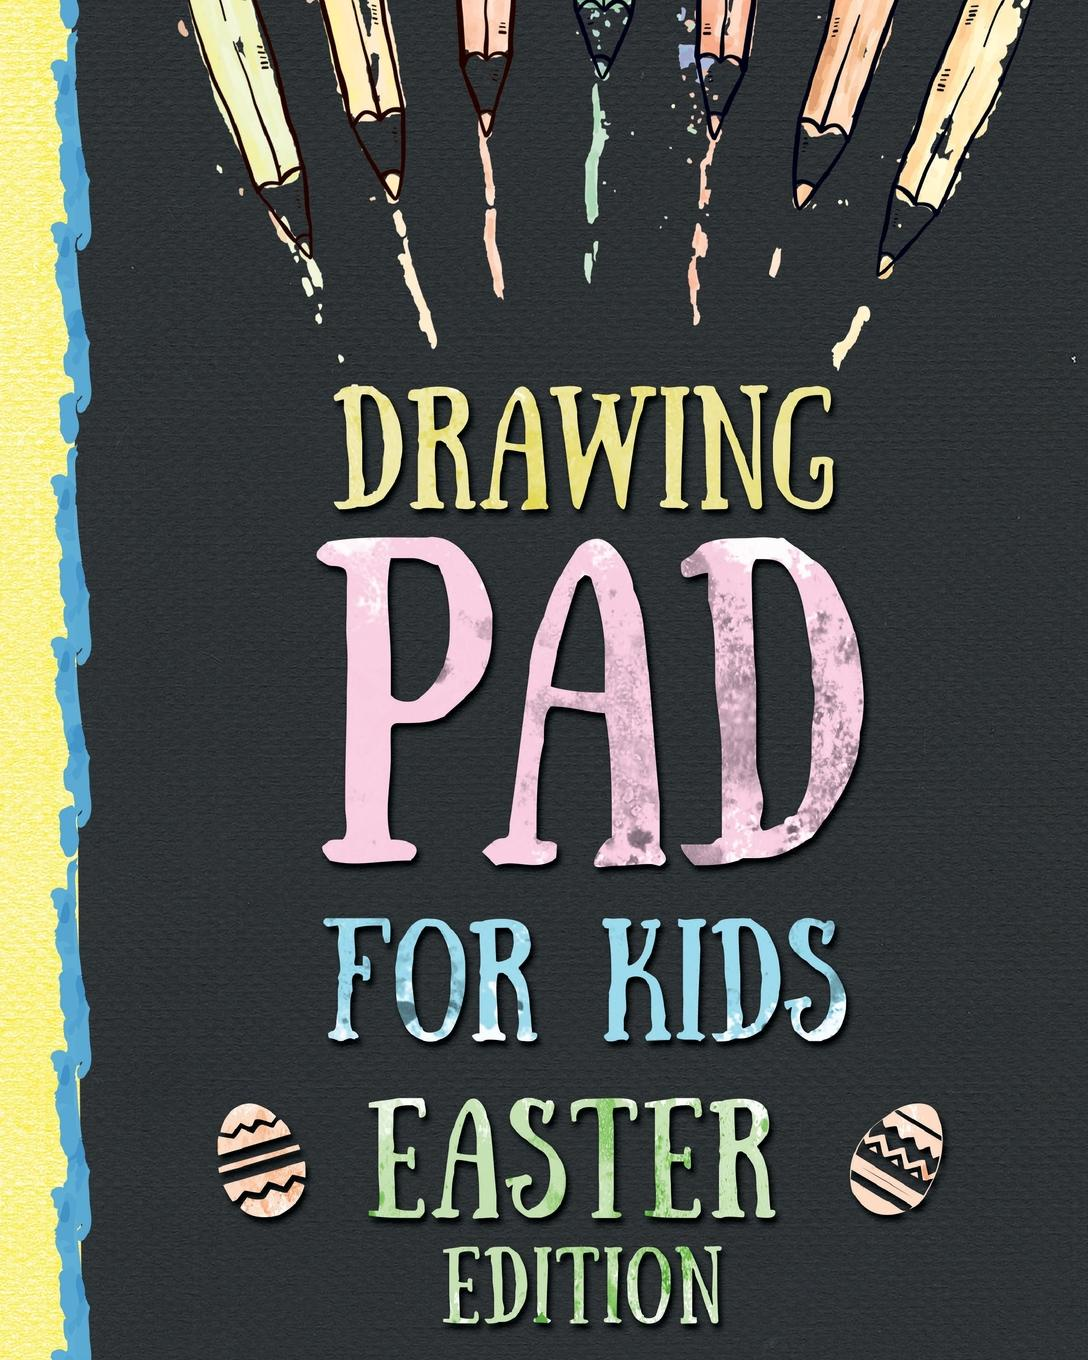 Peanut Prodigy Drawing Pad for Kids - Easter Edition. Creative Blank Sketch Book for Boys and Girls Ages 3, 4, 5, 6, 7, 8, 9, and 10 Years Old - An Arts and Crafts Book for Coloring, Drawing, Doodling and Painting on Easter peanut prodigy drawing pad for kids st patrick s day edition creative blank sketch book for boys and girls ages 3 4 5 6 7 8 9 and 10 years old an arts and crafts book for coloring drawing doodling and painting on st patricks day